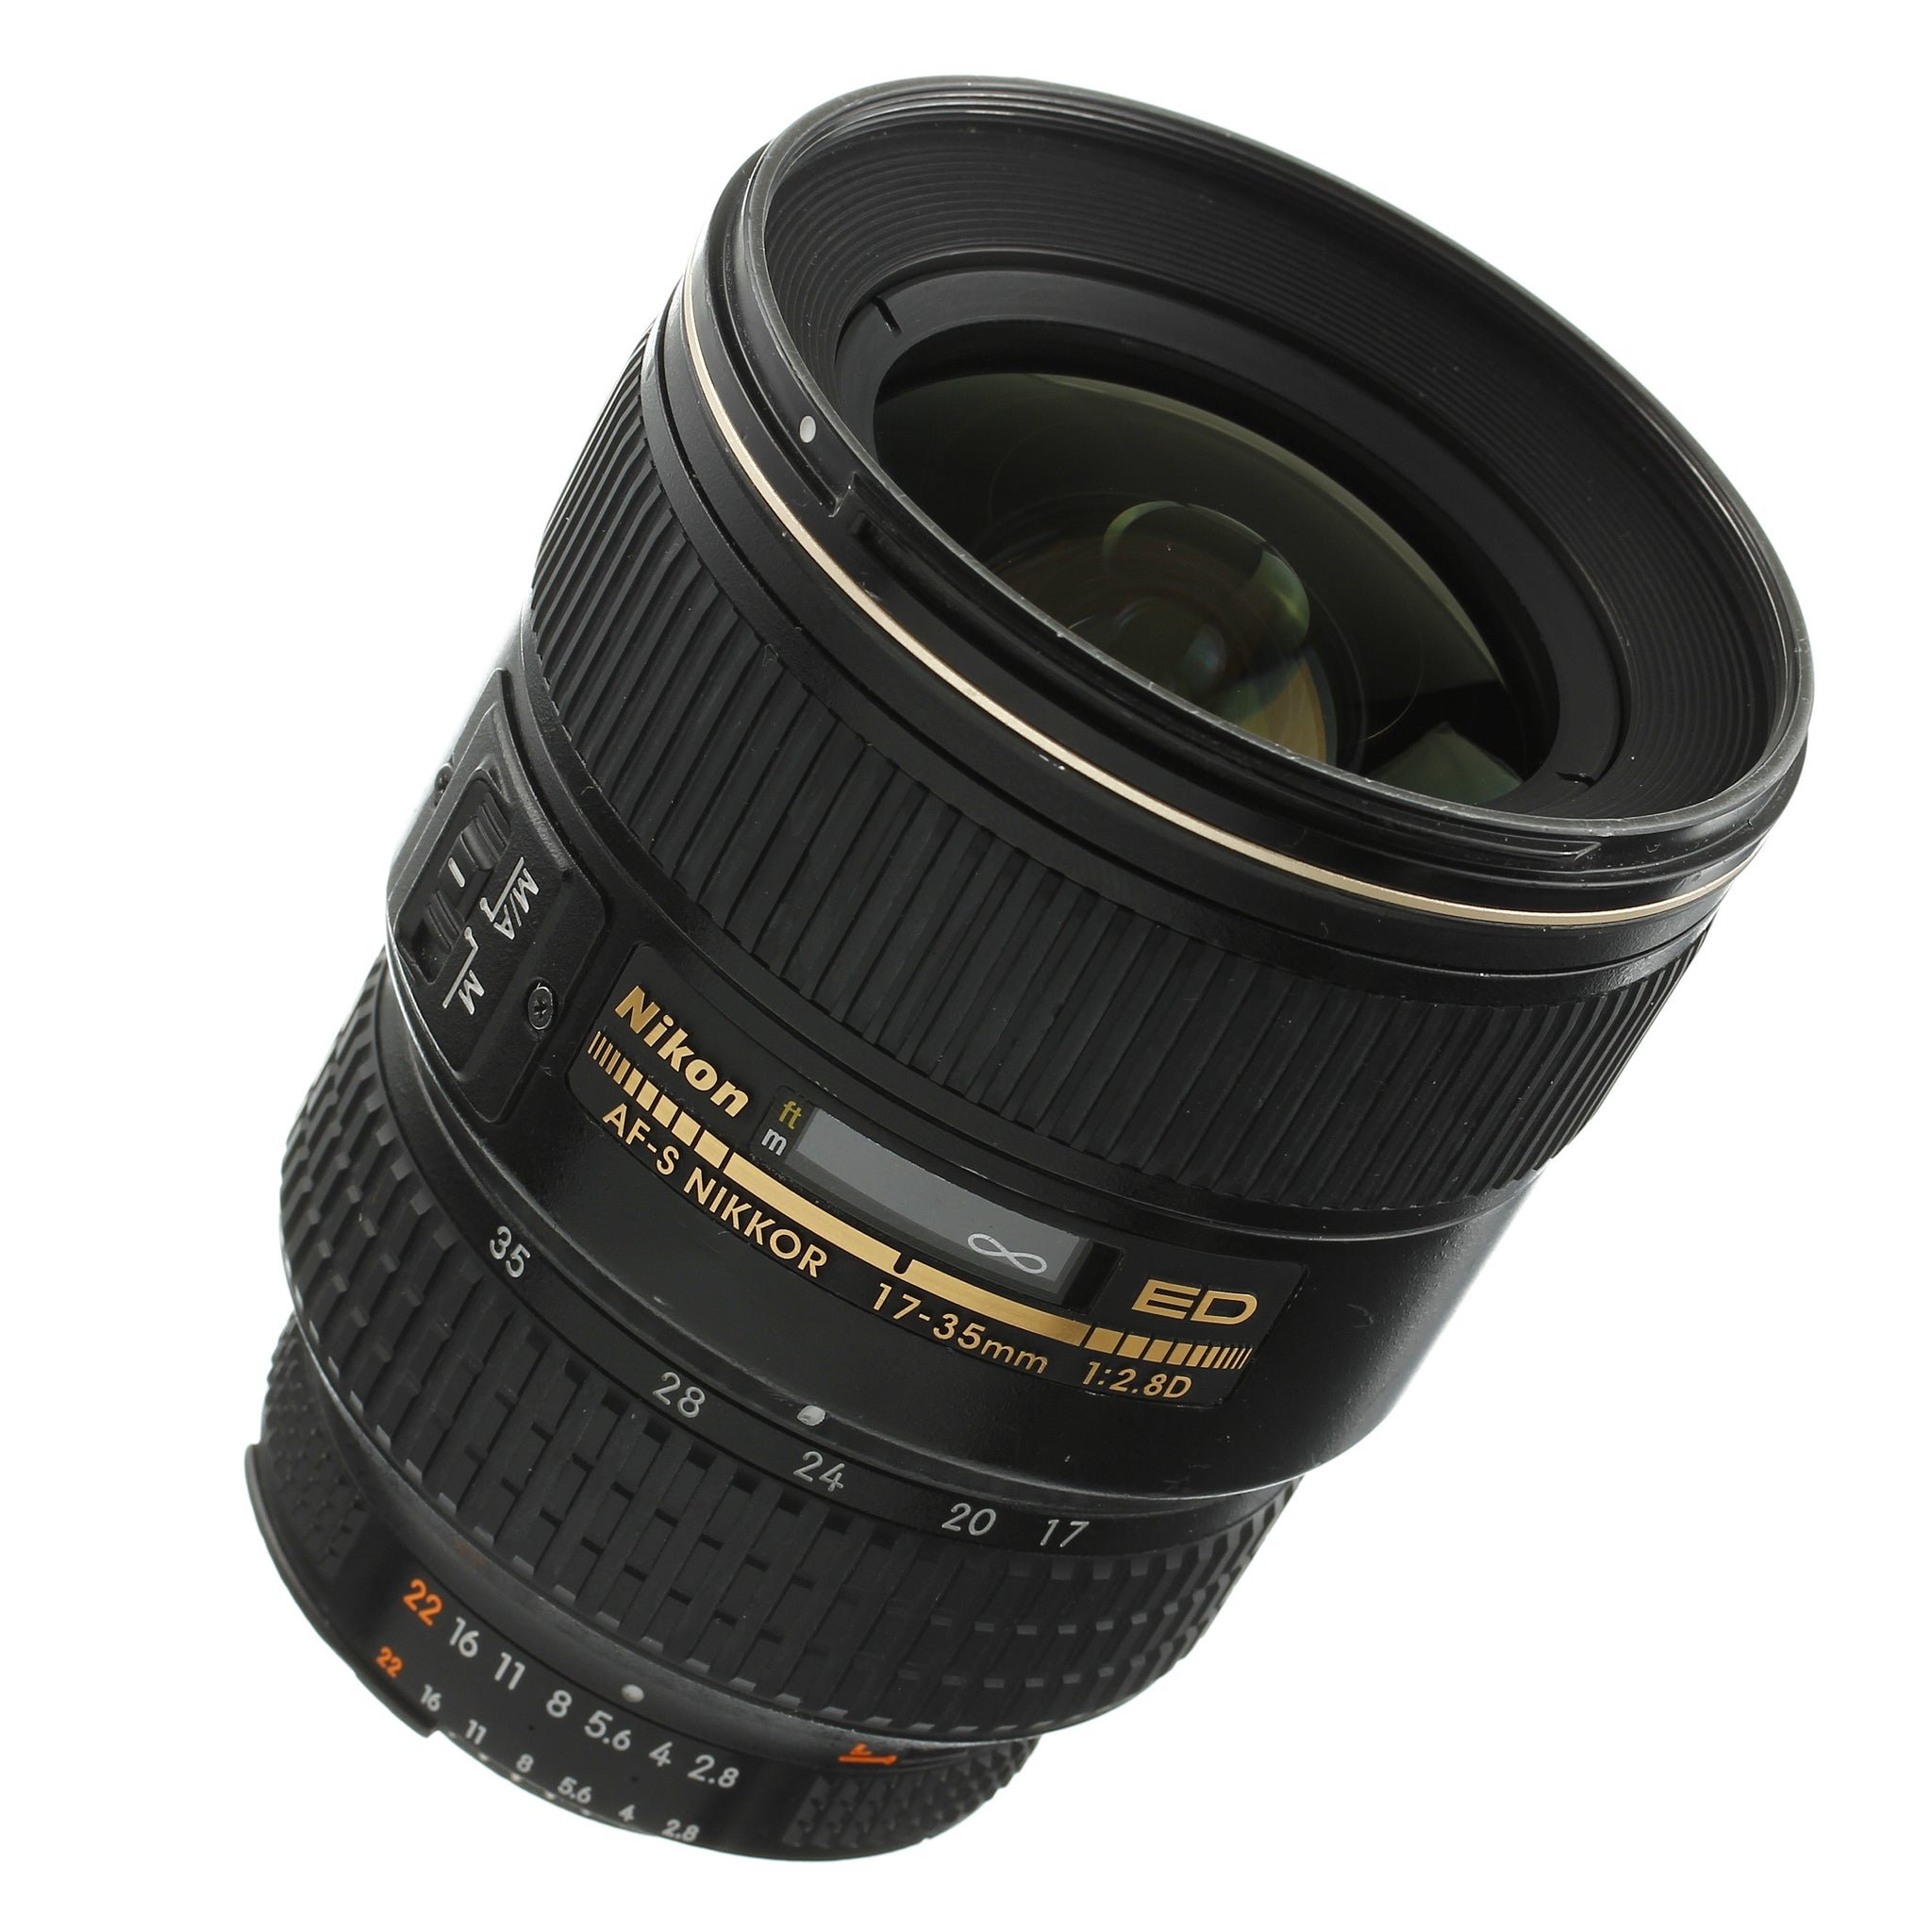 Nikon AF-S Nikkor 17-35mm 2.8 D Lens US Model